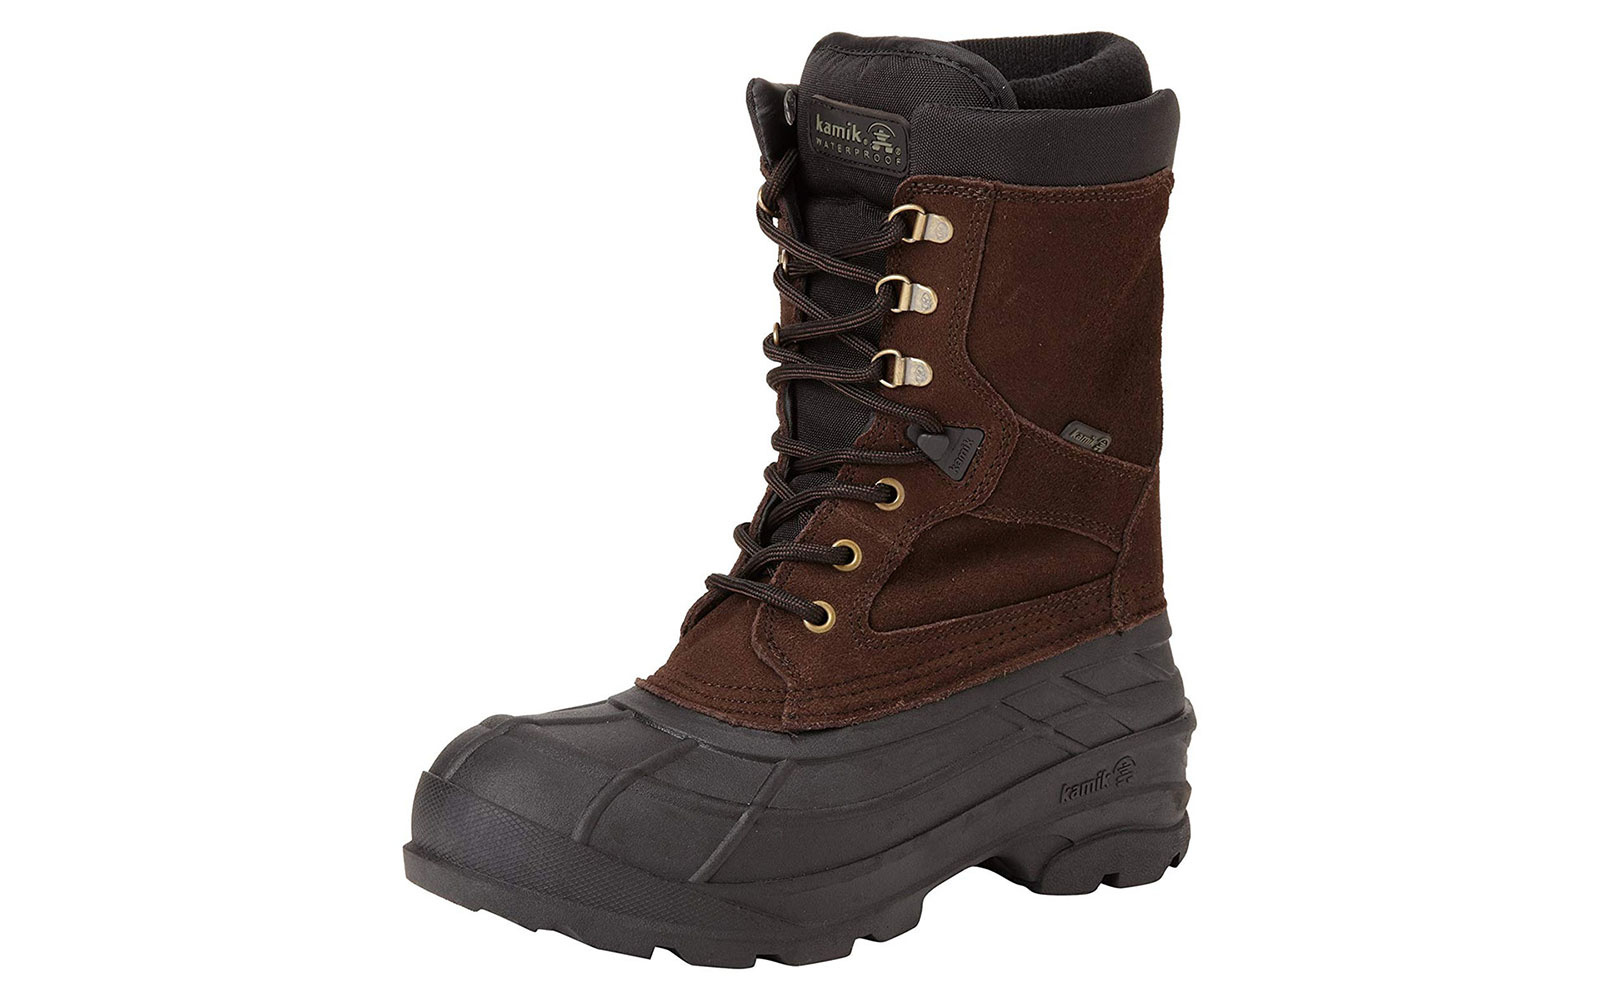 Best Overall: Kamik Men's Nationplus Snow Boot